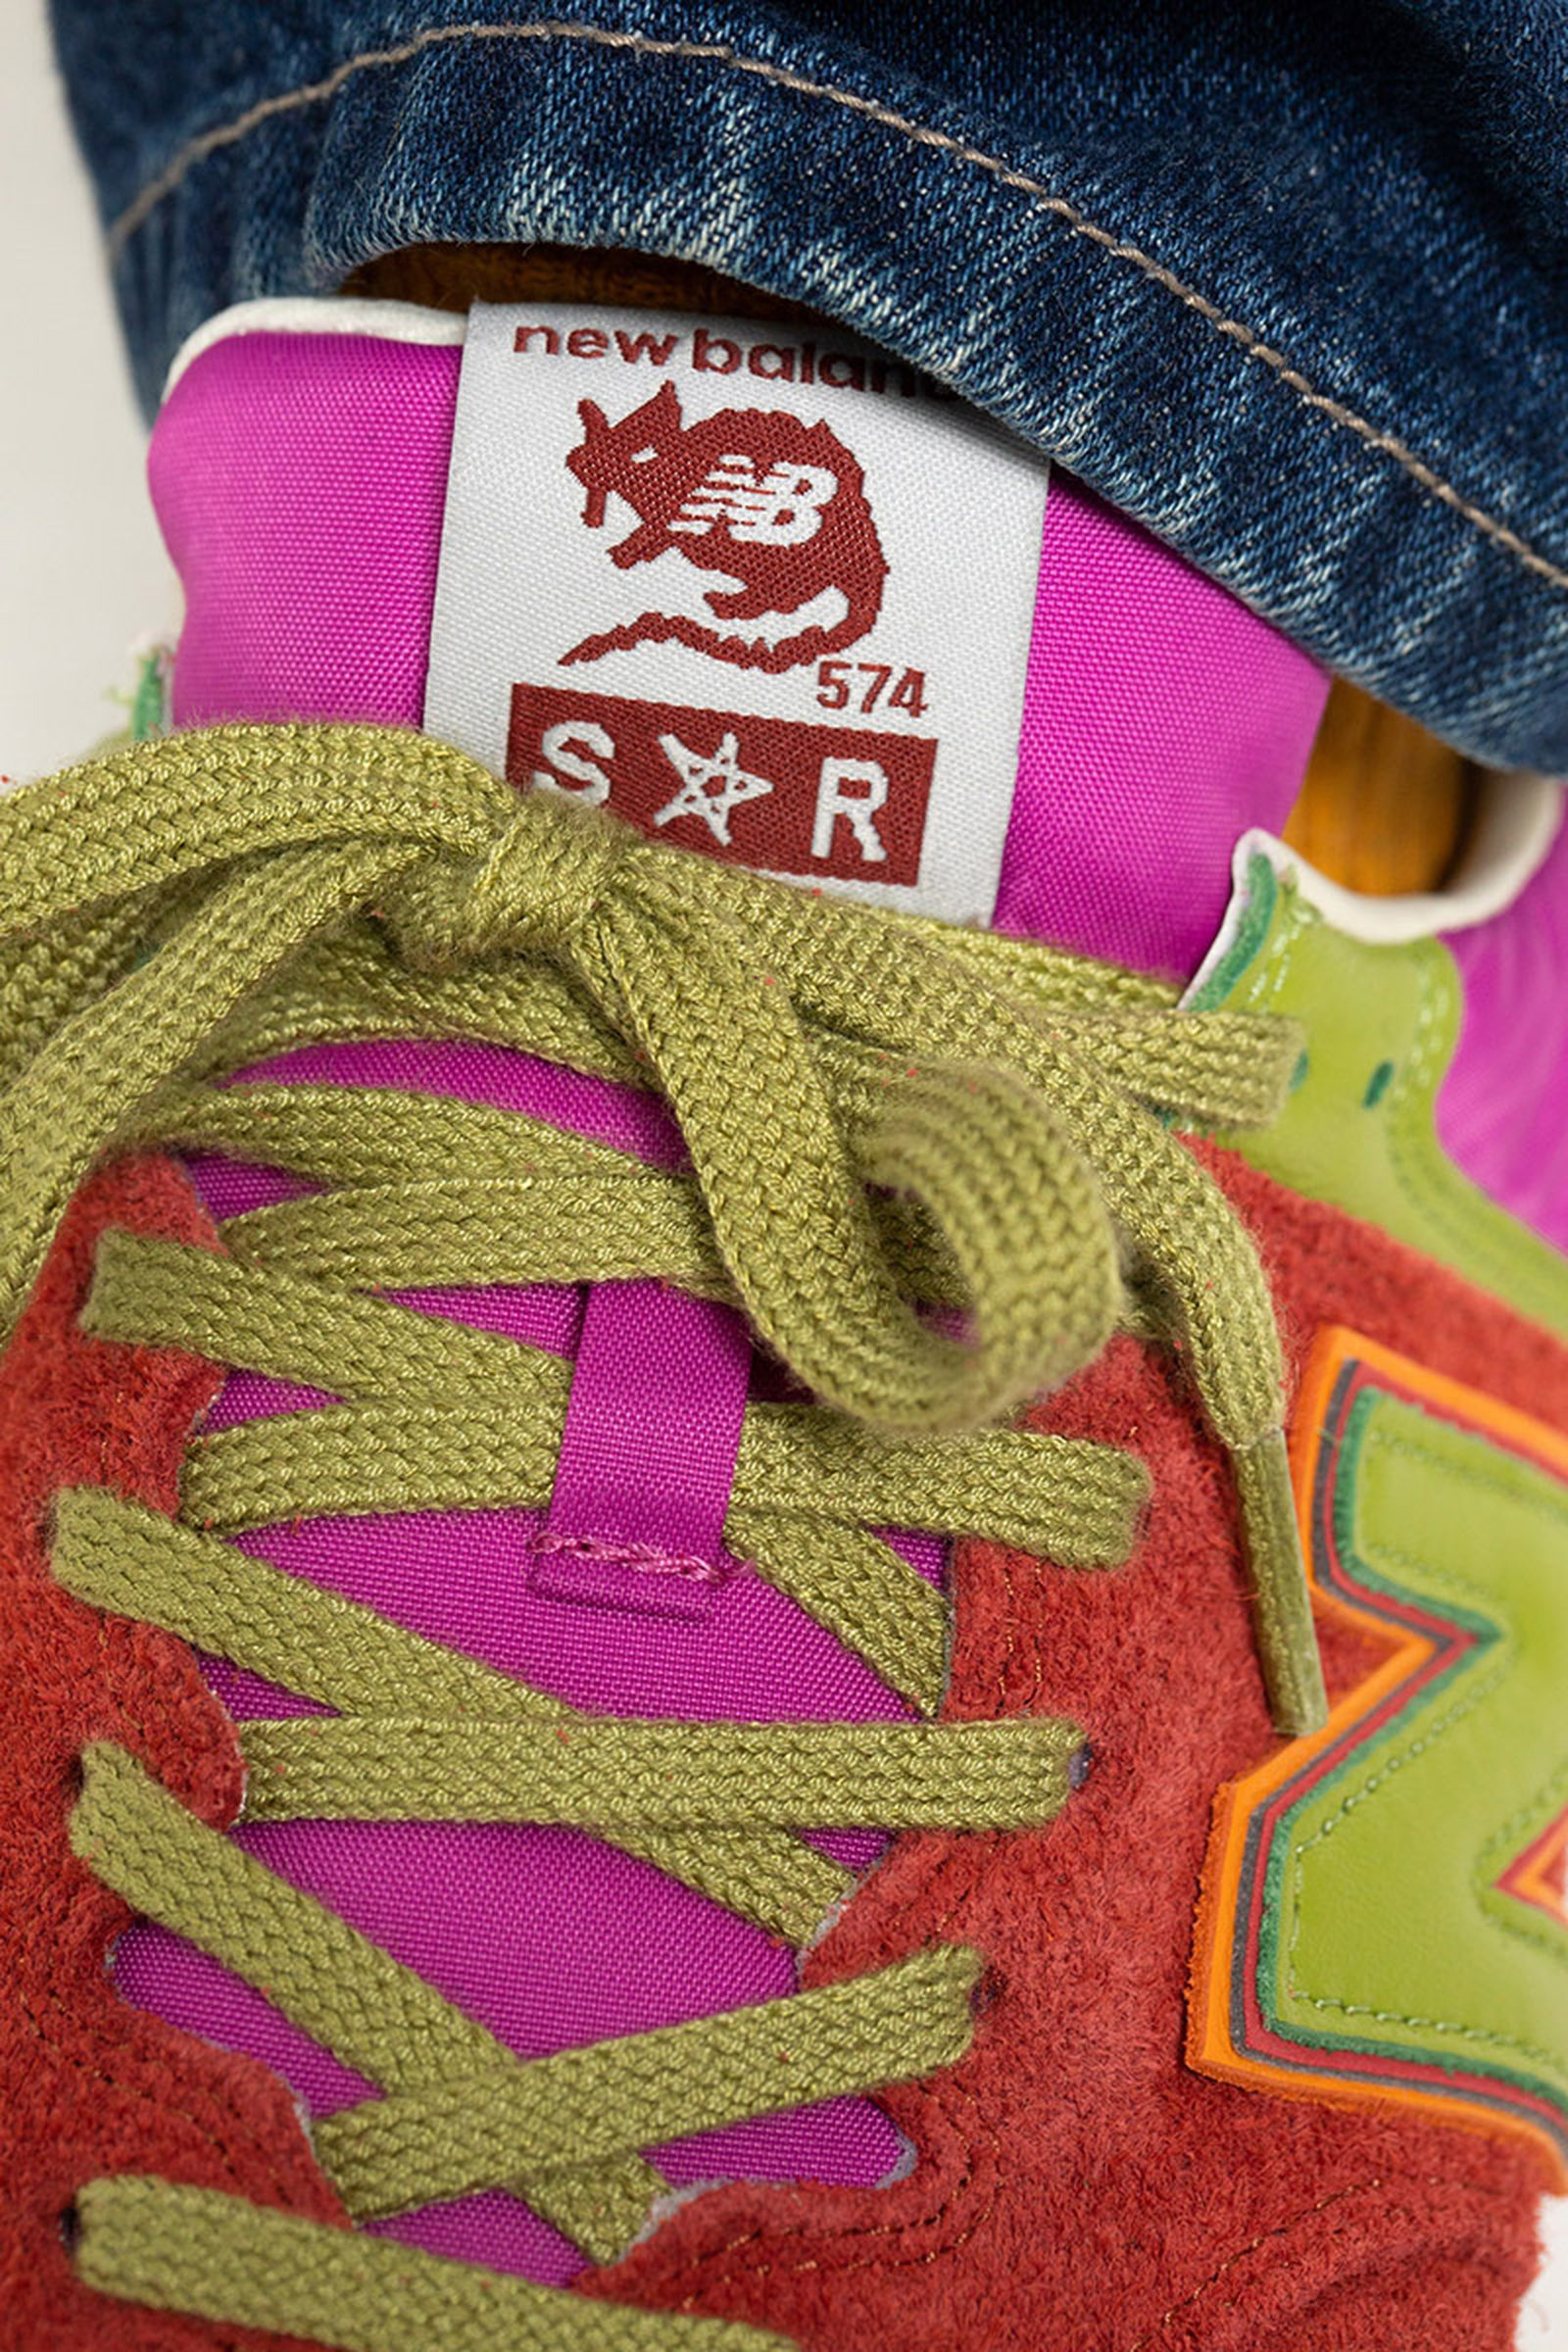 stray-rats-new-balance-574-release-date-price-07